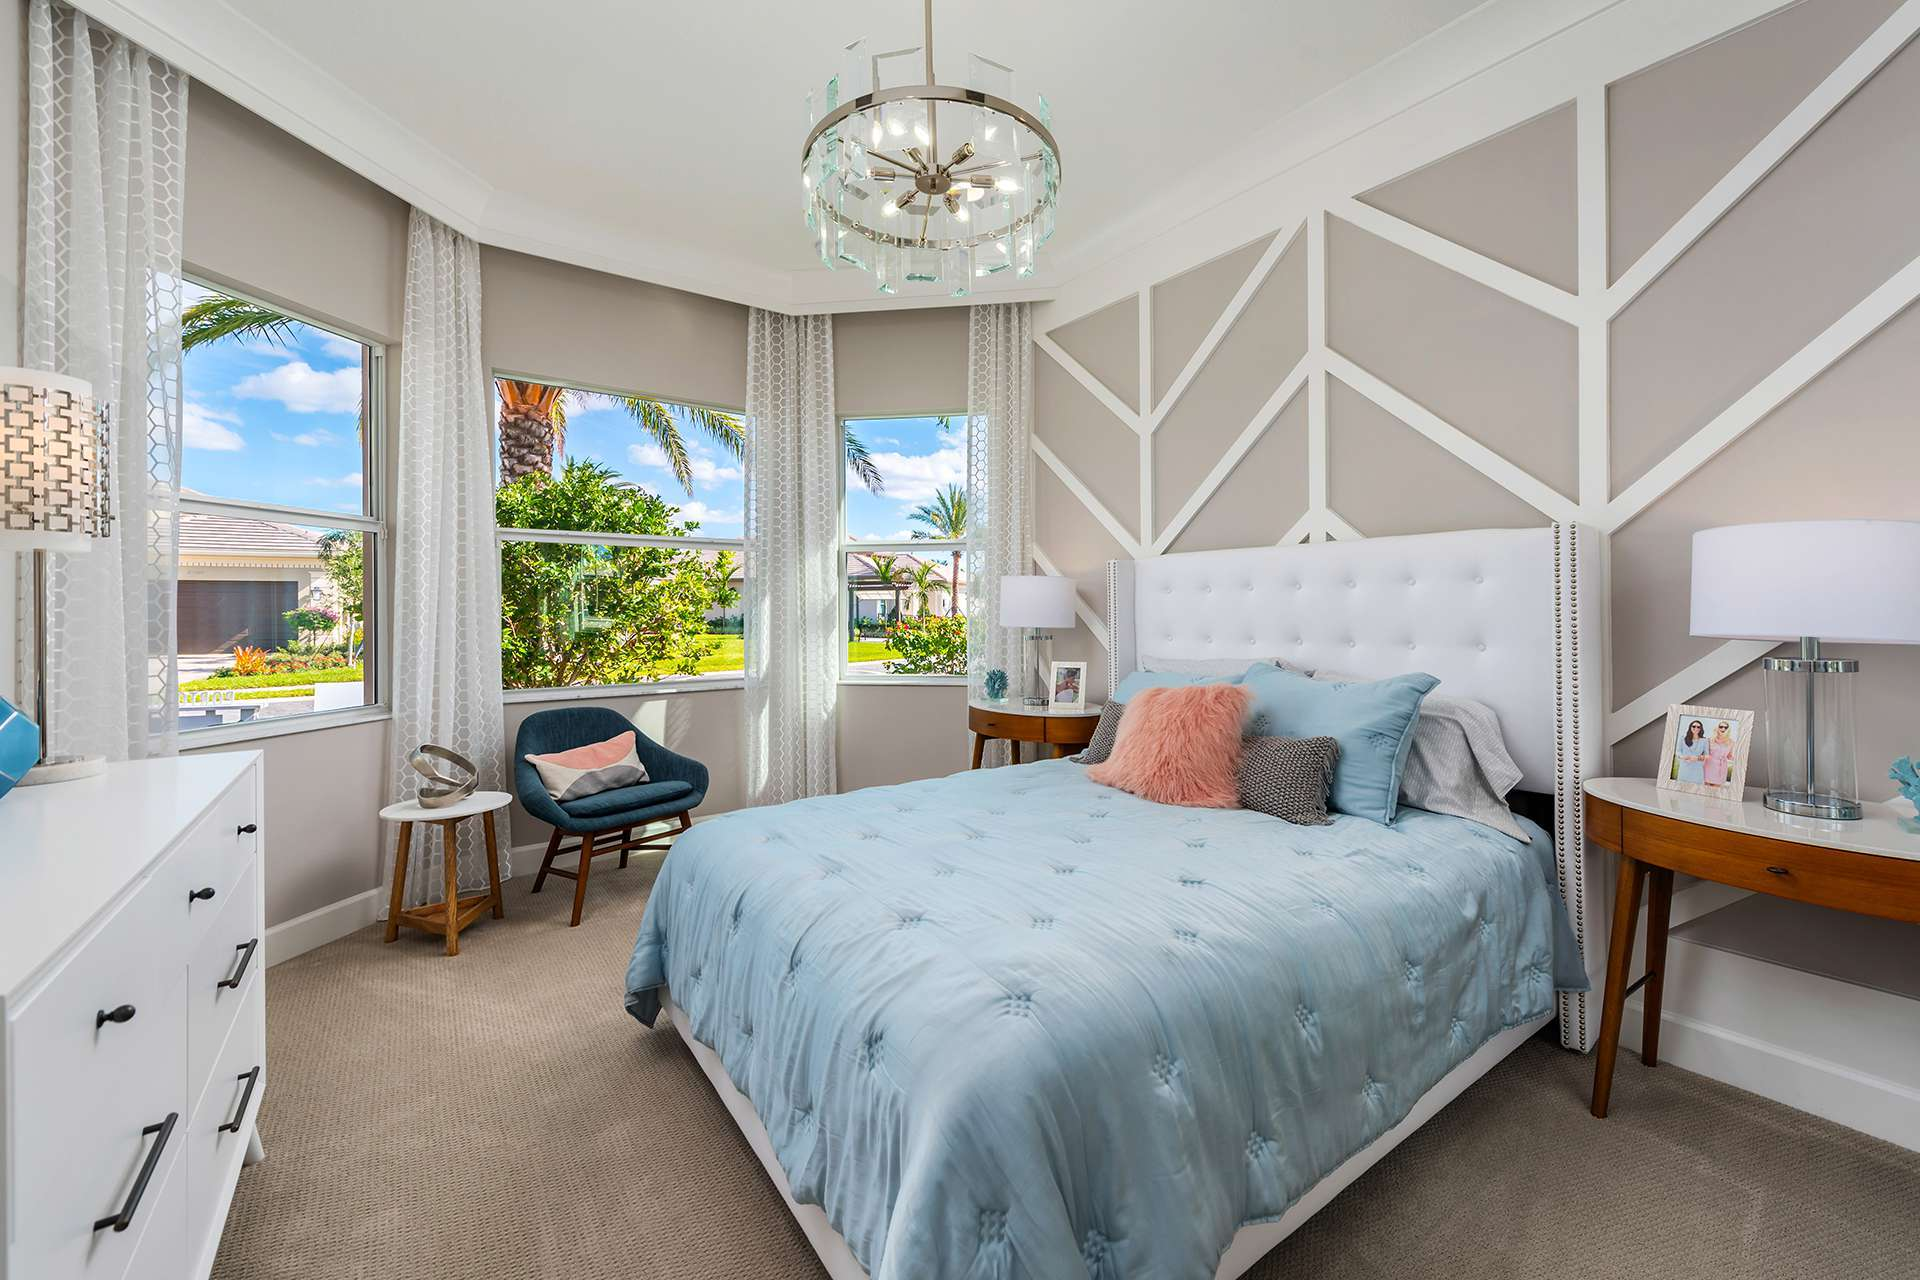 Bedroom featured in the Portofino By GL Homes in Fort Myers, FL